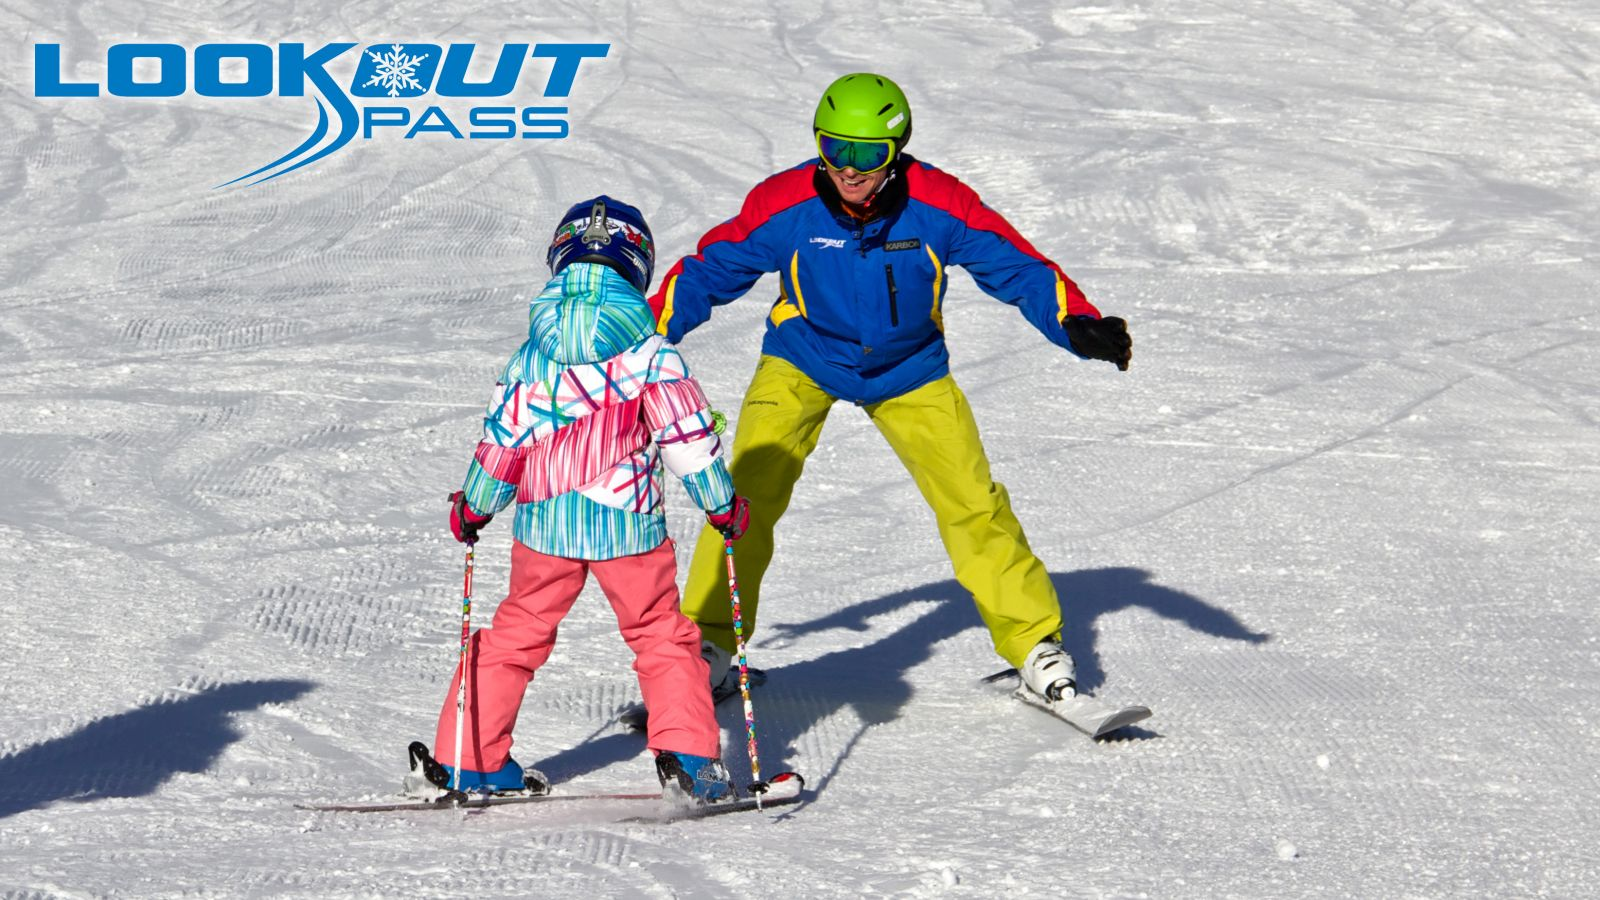 Instructor teaching girl how to ski at Lookout Pass